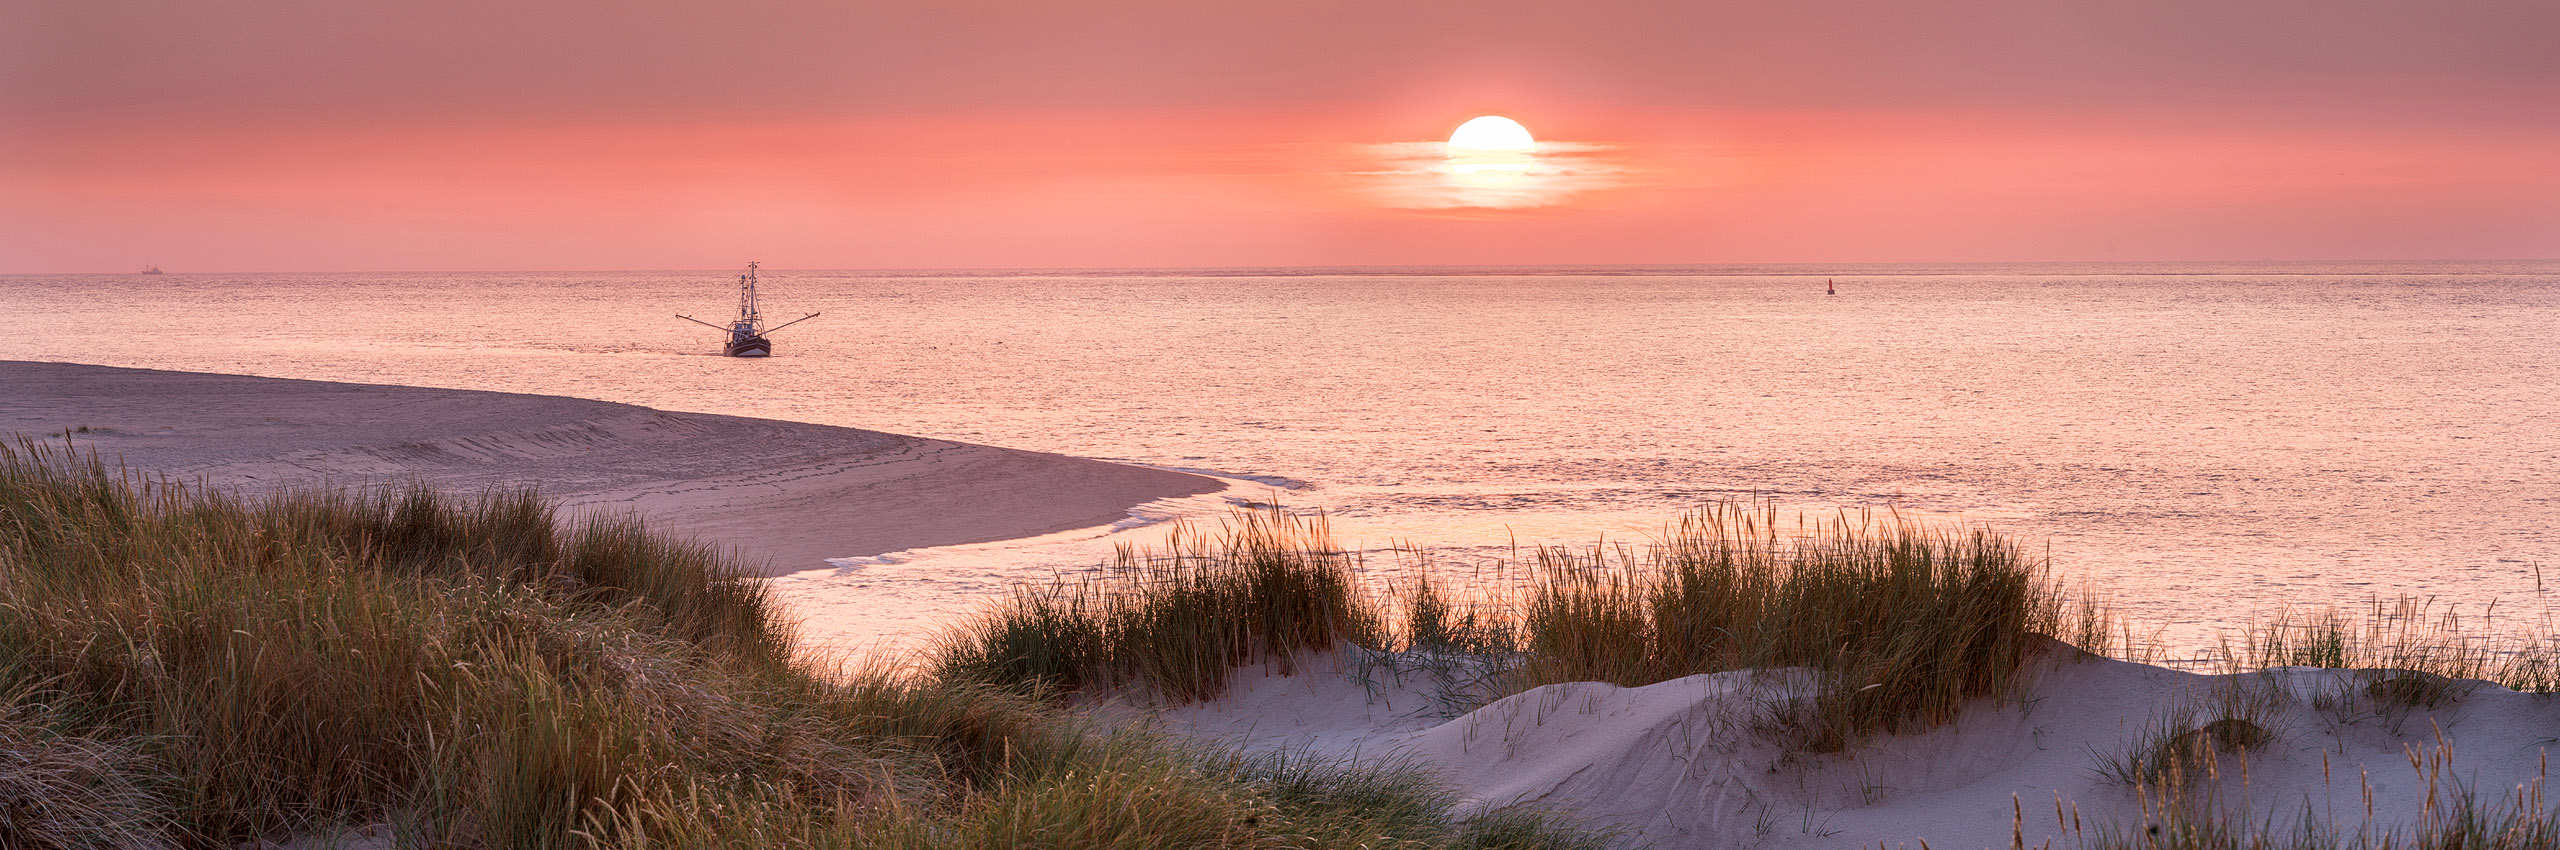 20553496 | GER/Sylt Island, List, Beach on Ellenbogen at Sunset | © Rainer Mirau/HUBER IMAGES